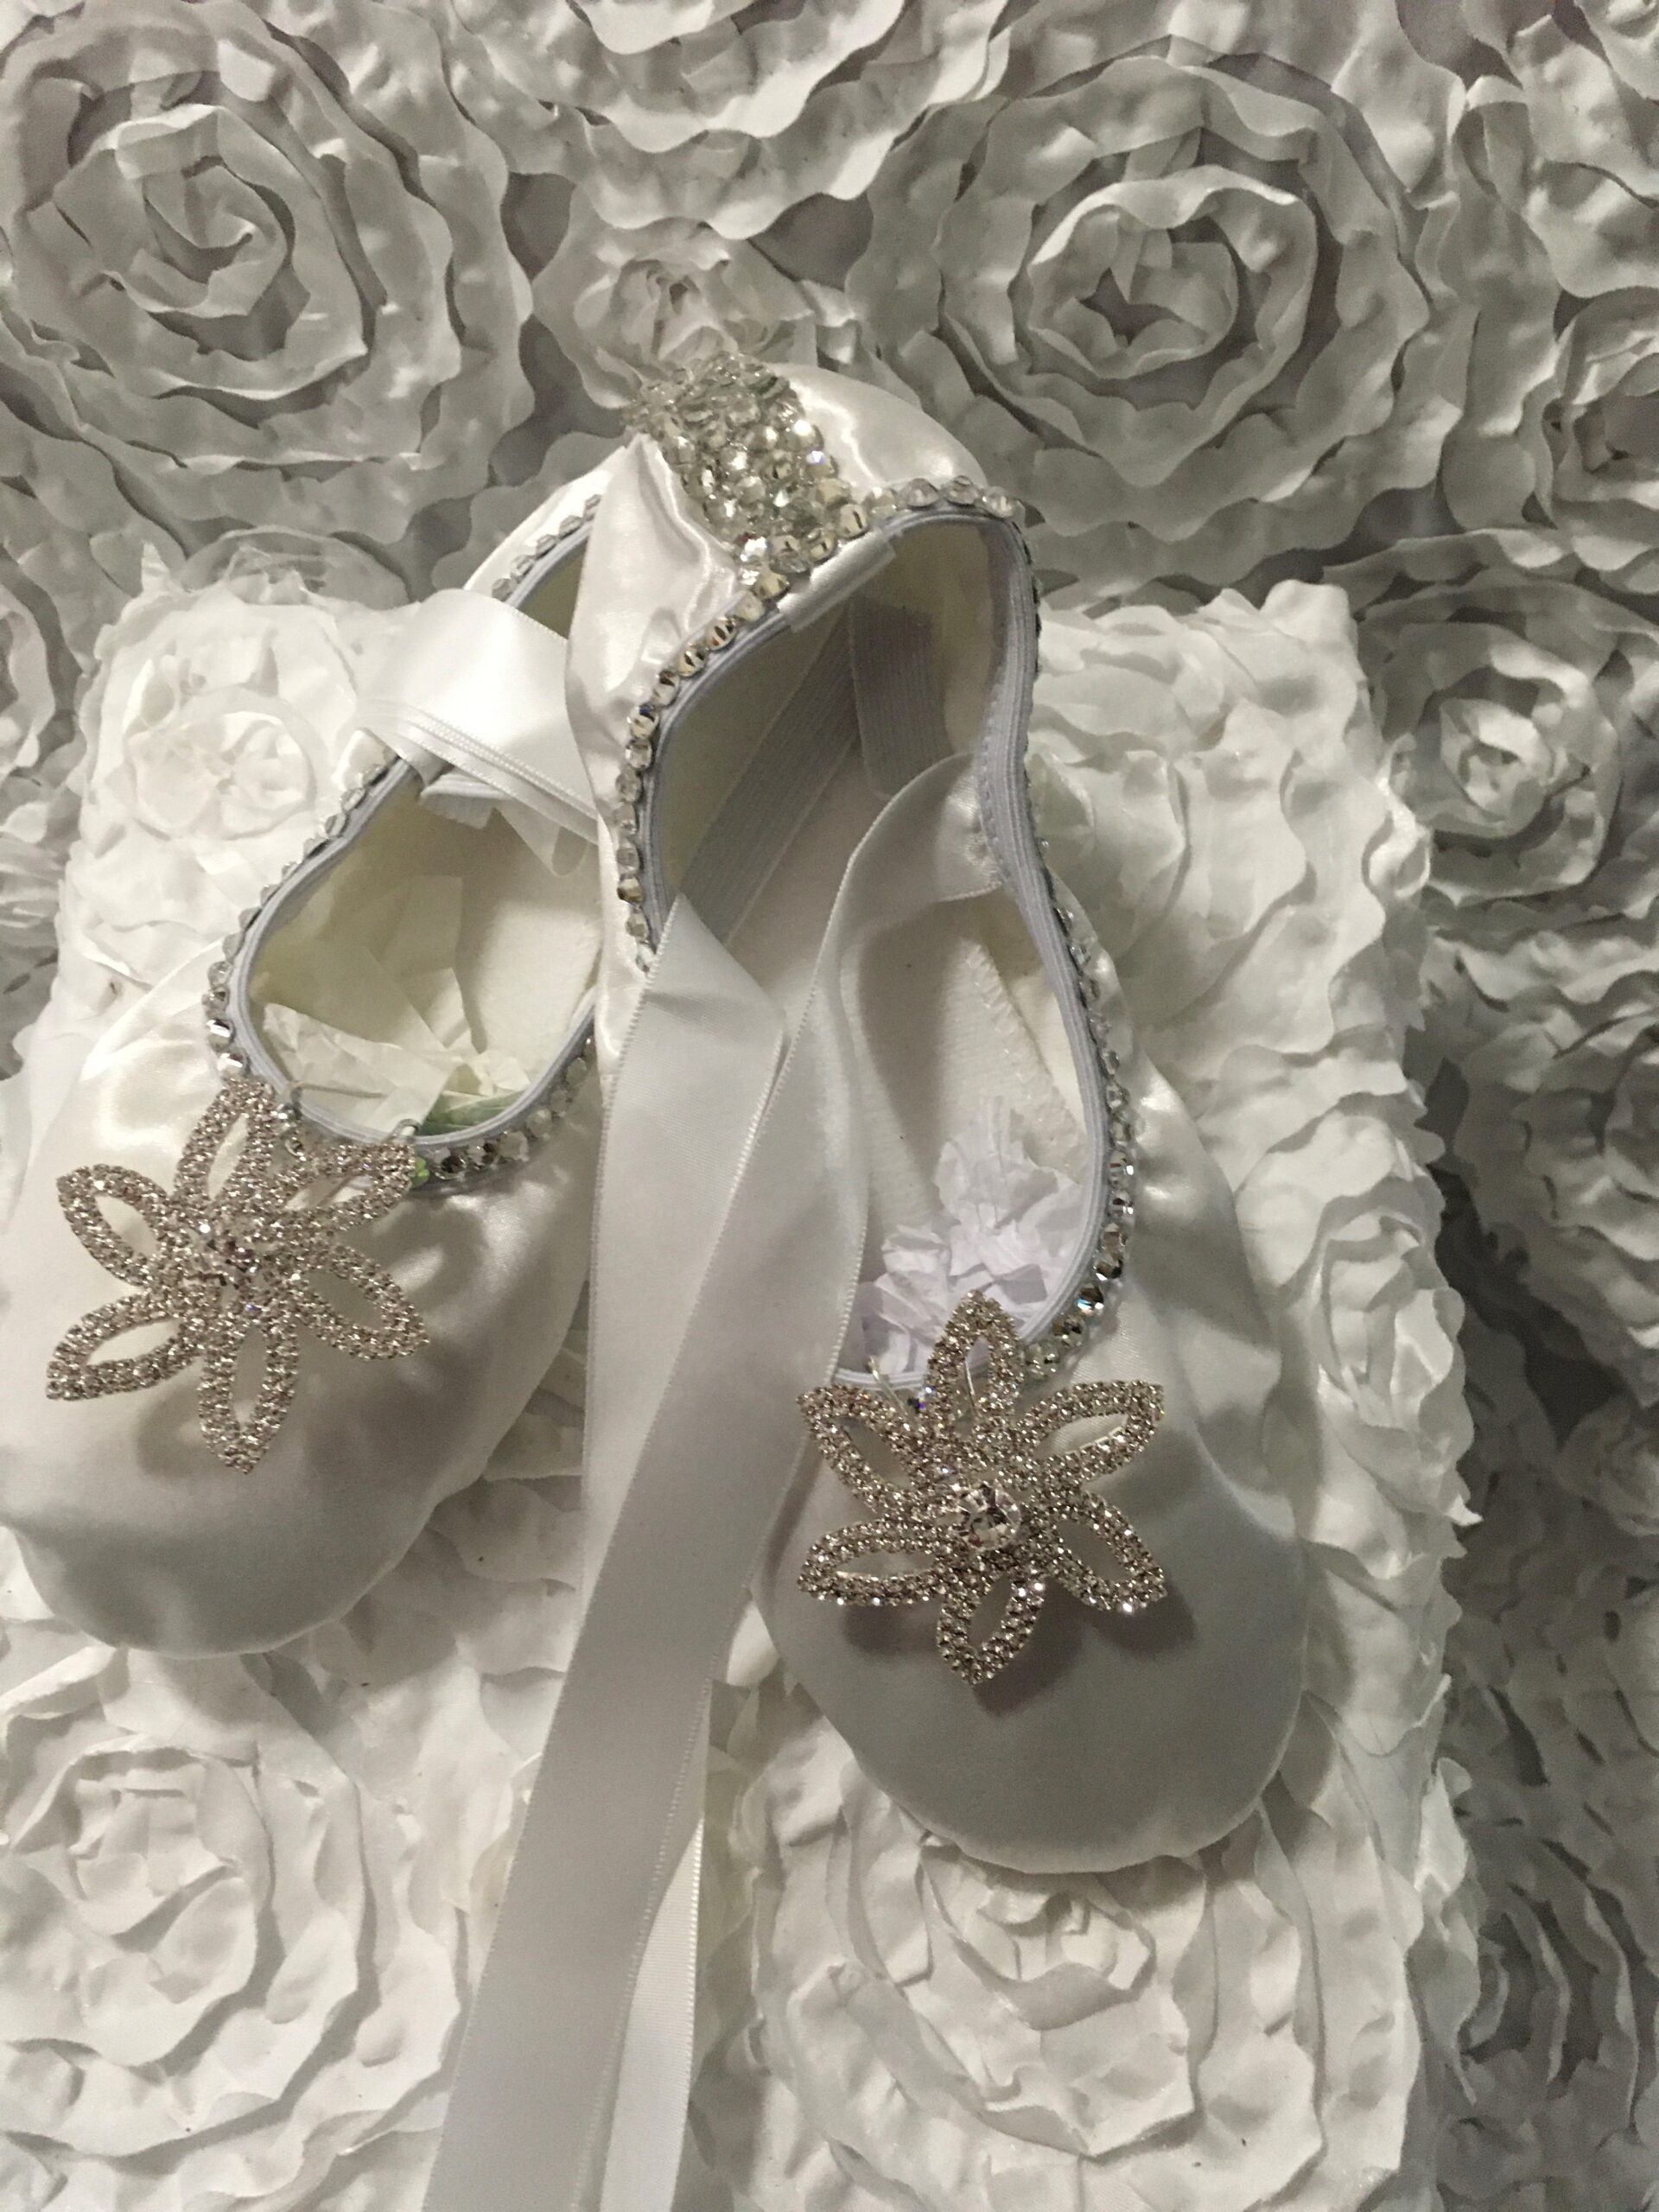 Ballerina-with-rhinestones-shoes-white-star-